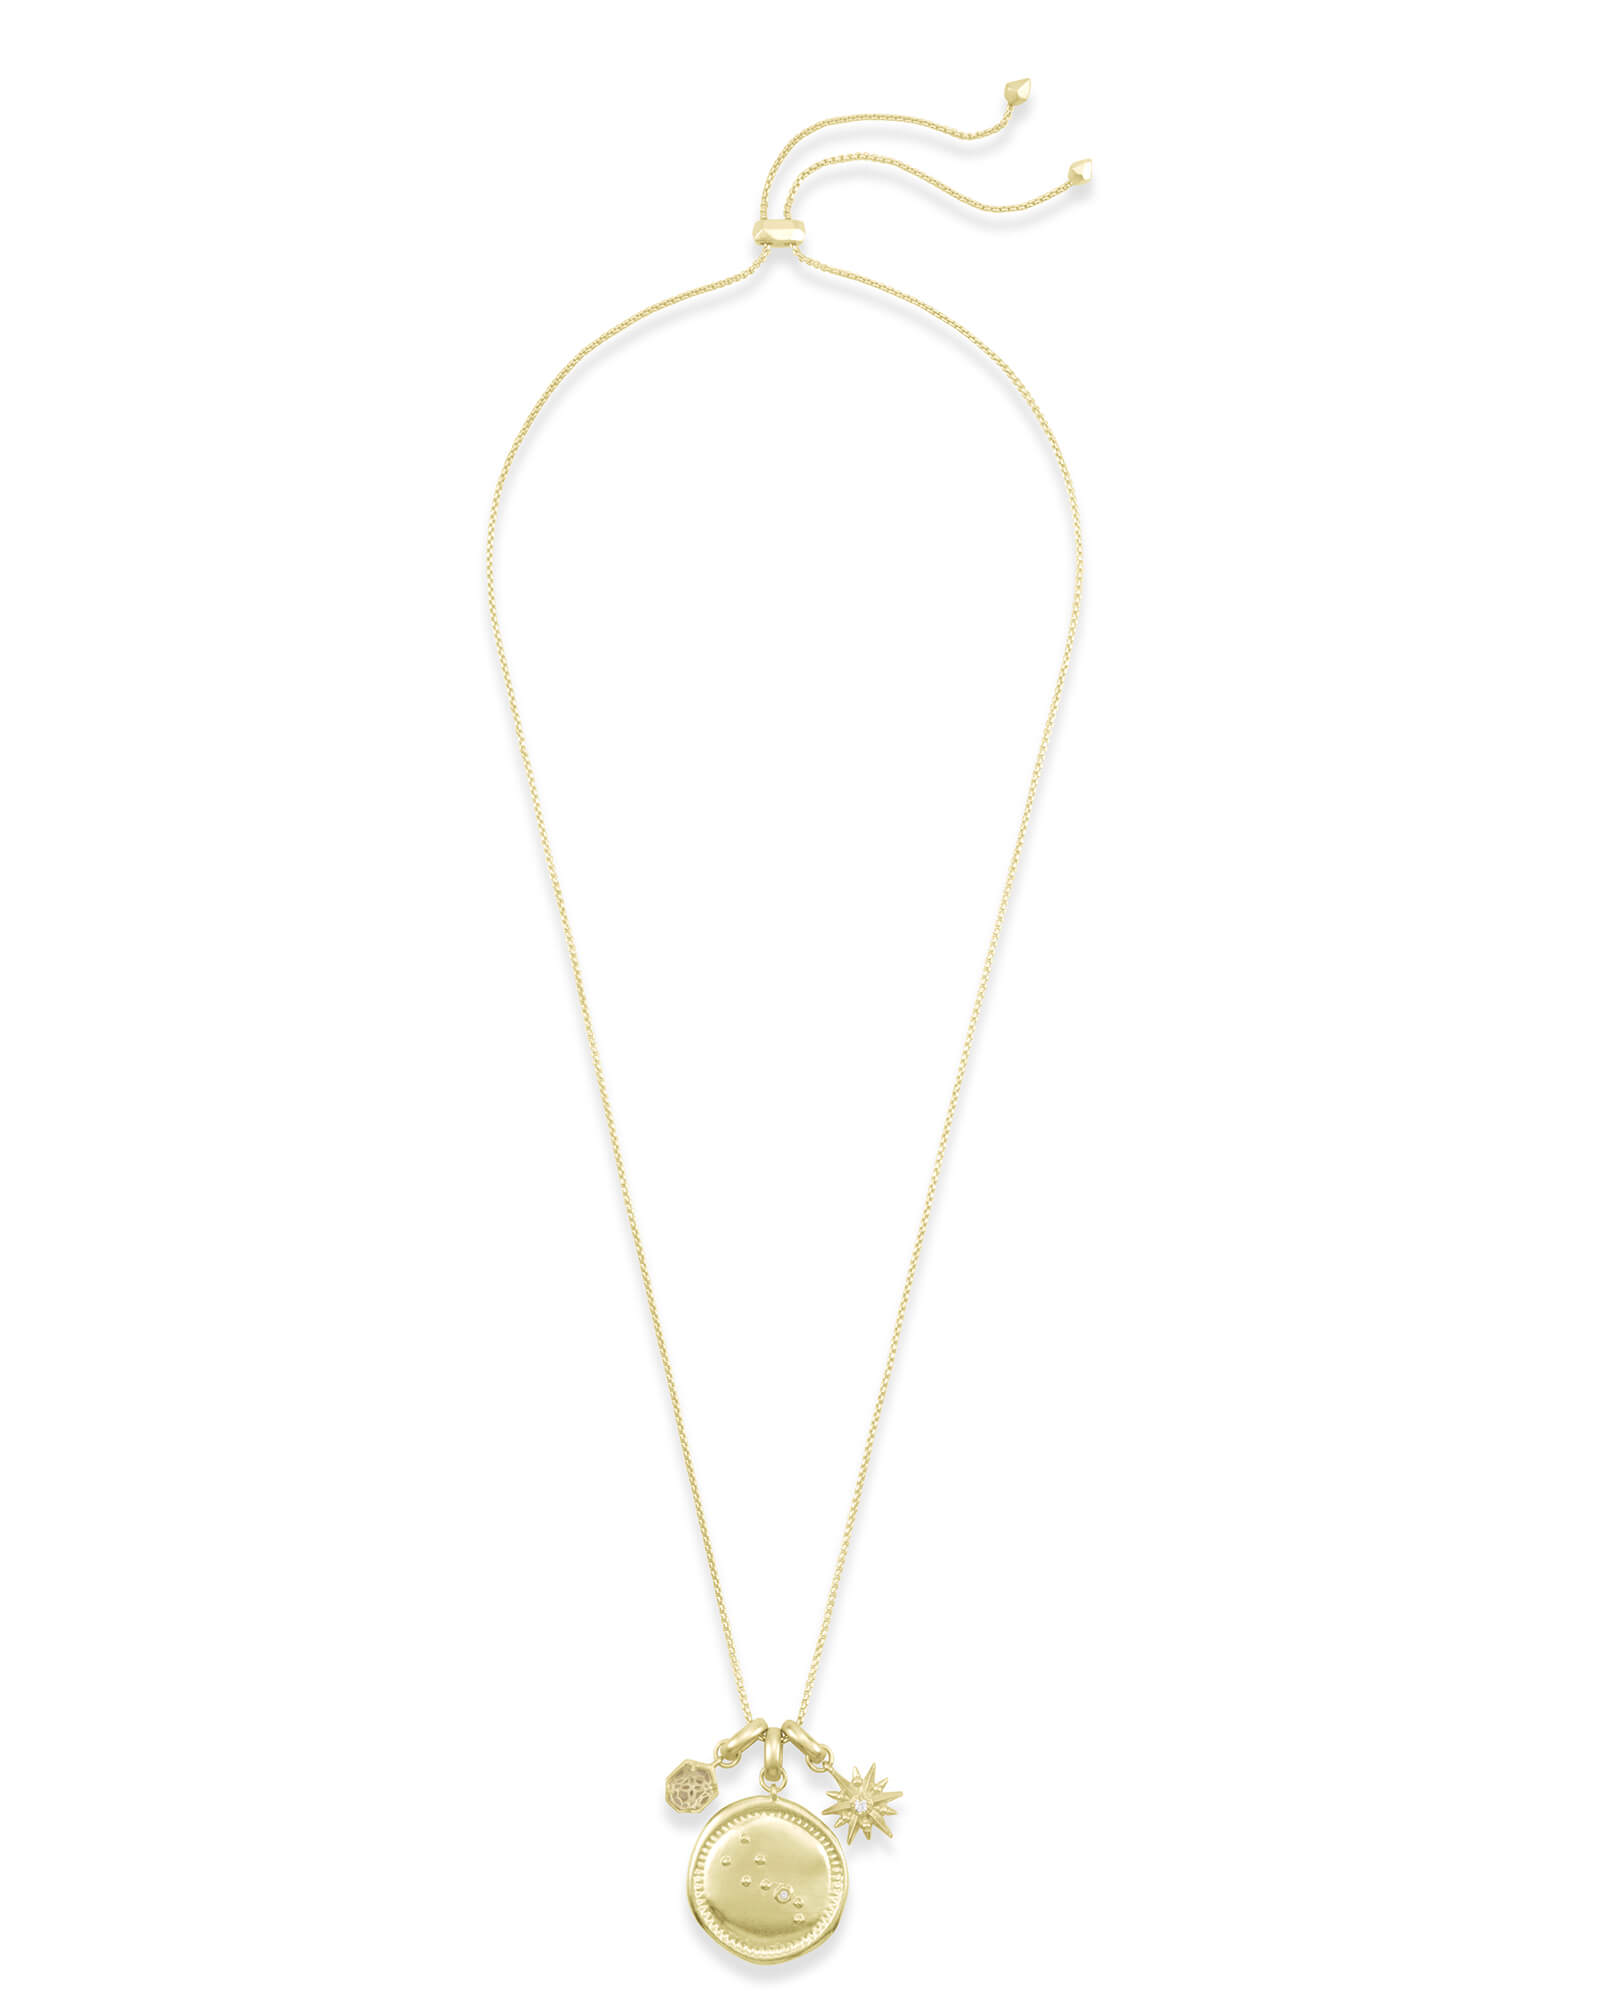 April Taurus Charm Necklace Set in Gold